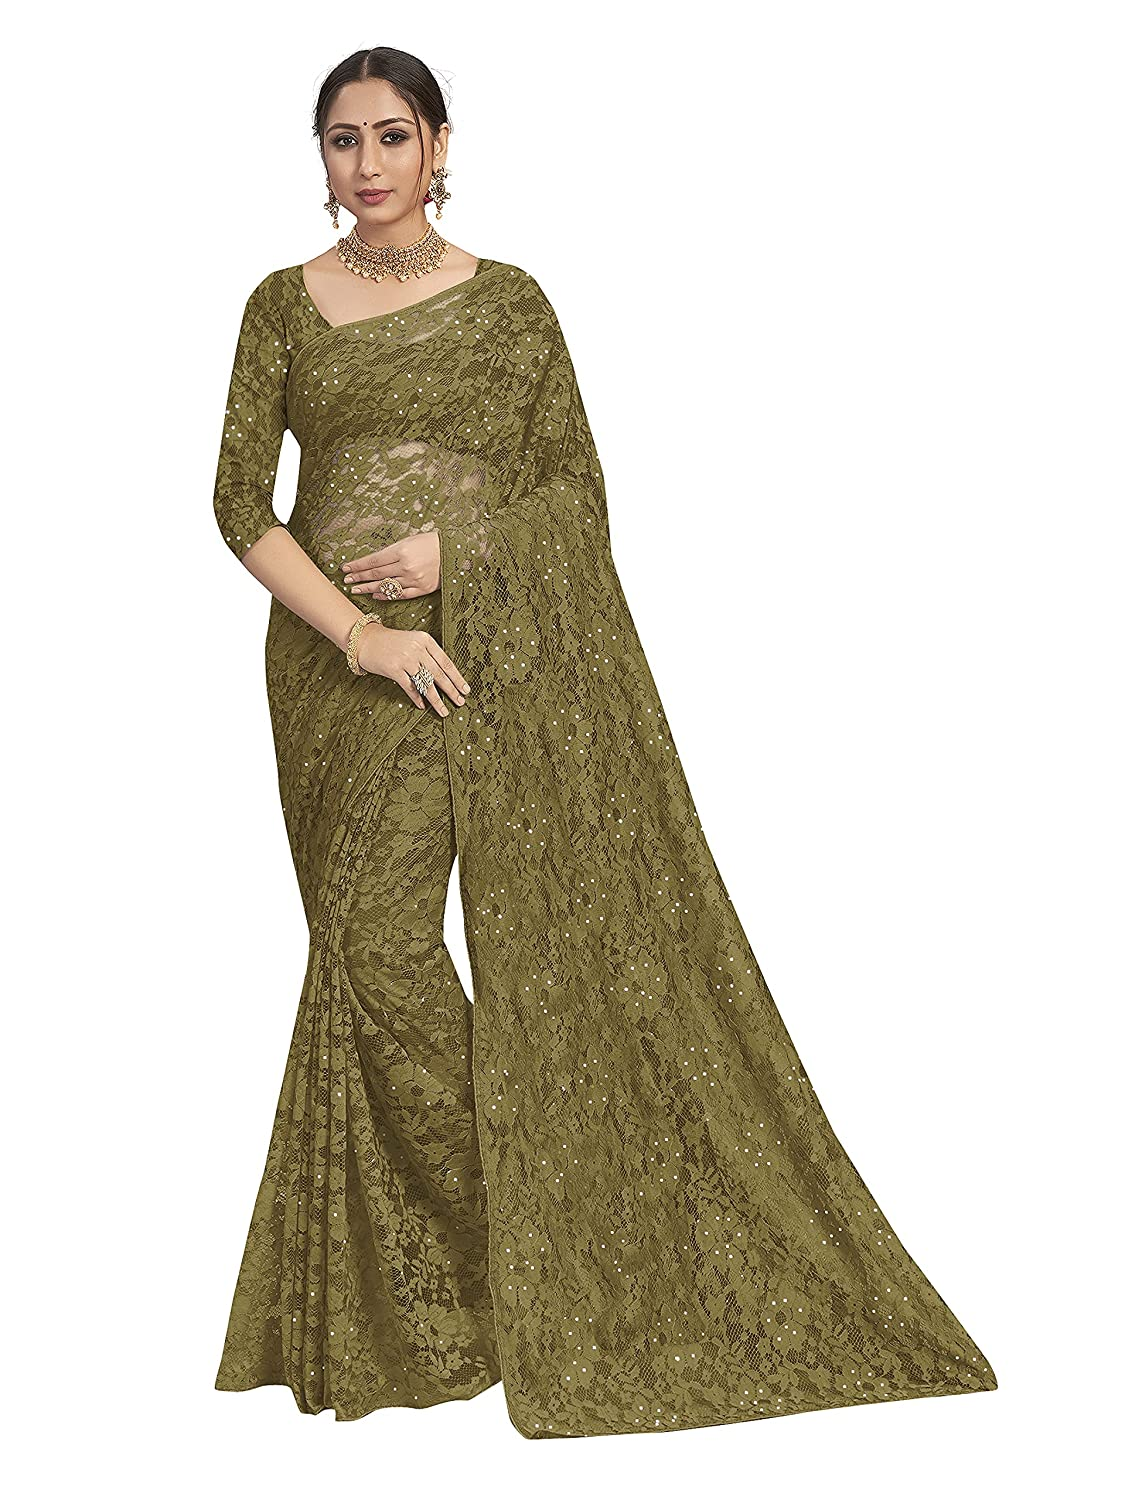 POONAM TEXTILE | Women's Olive Green Knit Brasso Saree With Blouse Piece